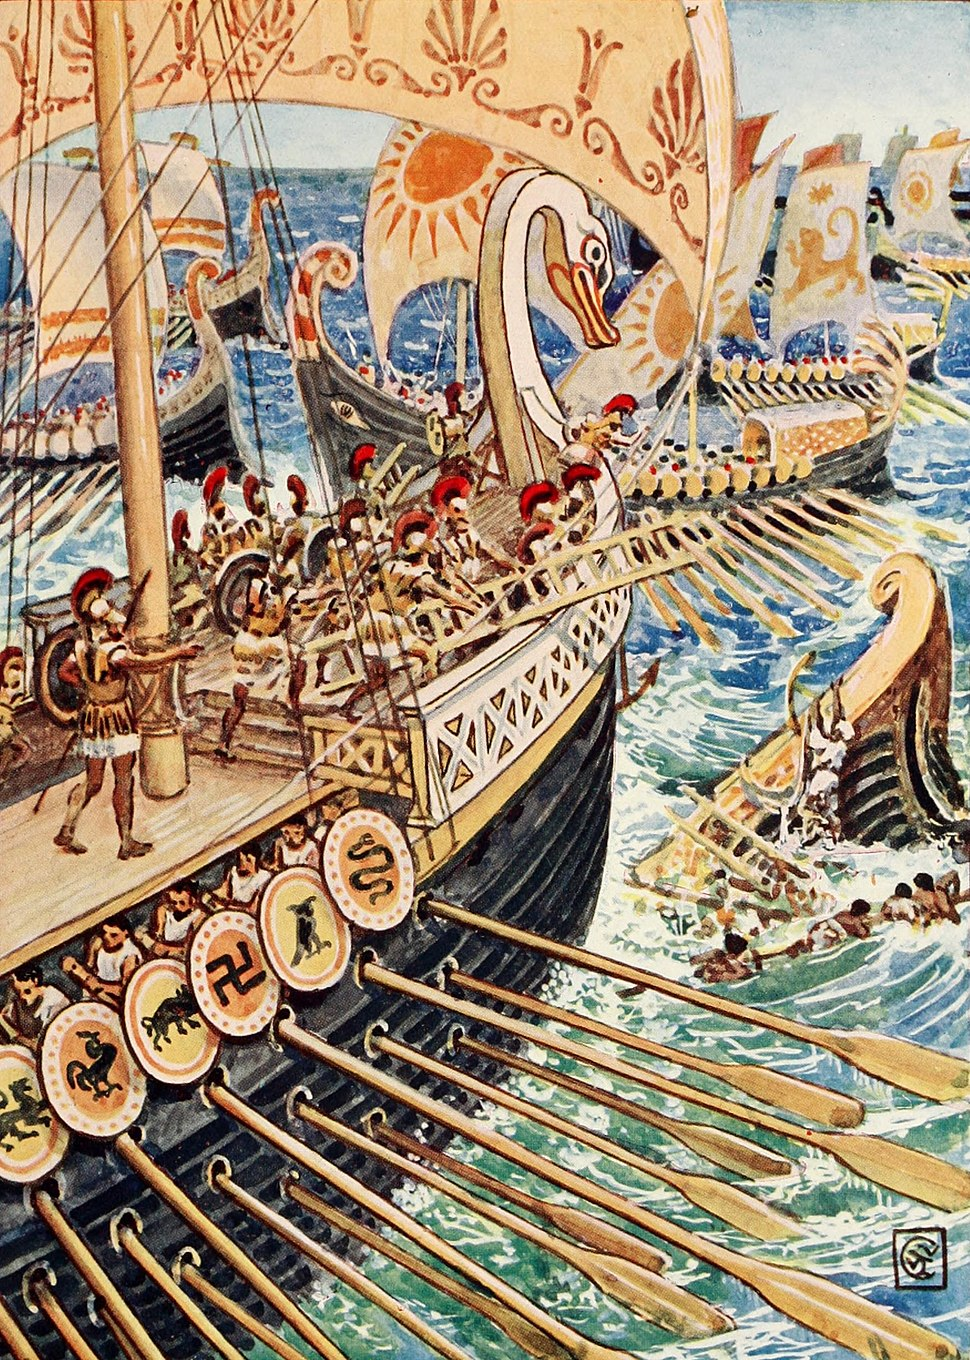 Ship dashed against ship, till the Persian Army dead strewed the deep like flowers